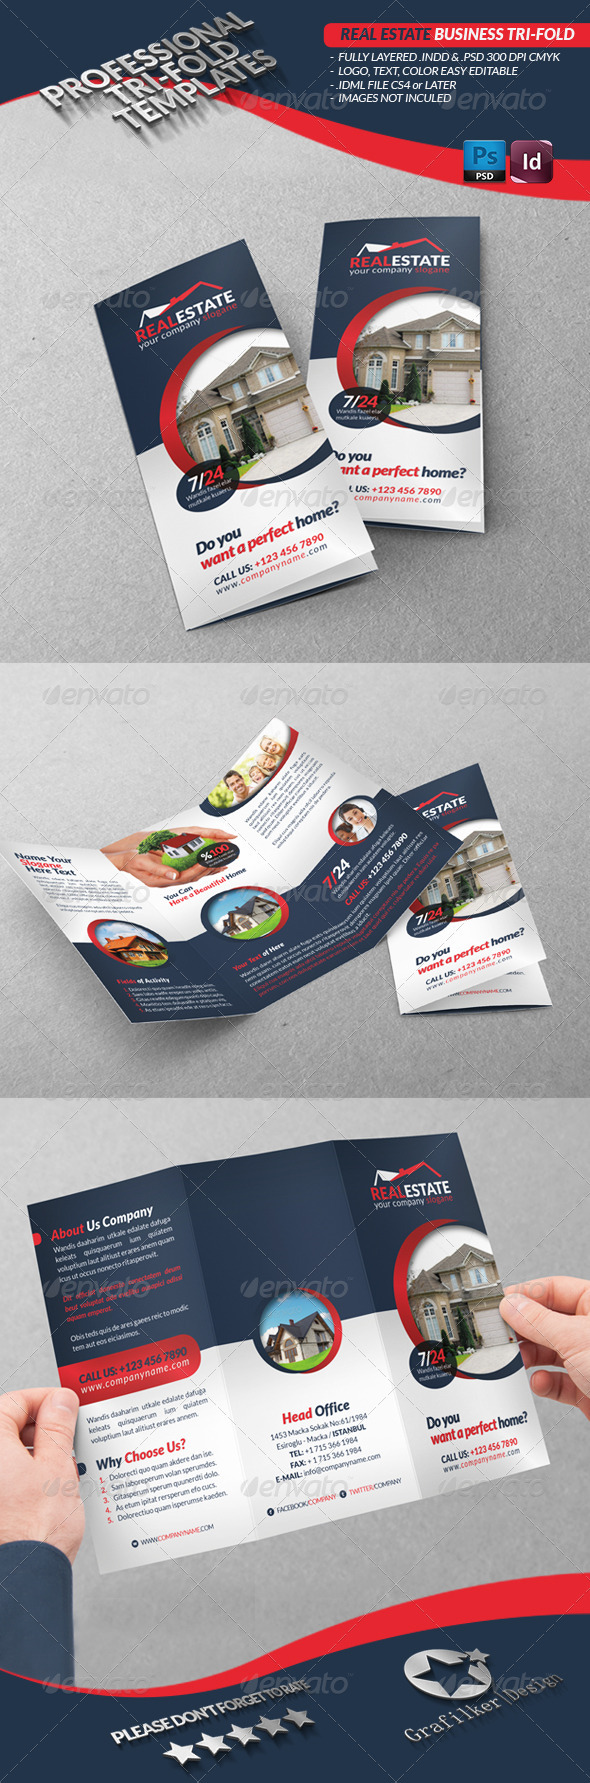 real estate tri fold brochure template - real estate business tri fold graphicriver